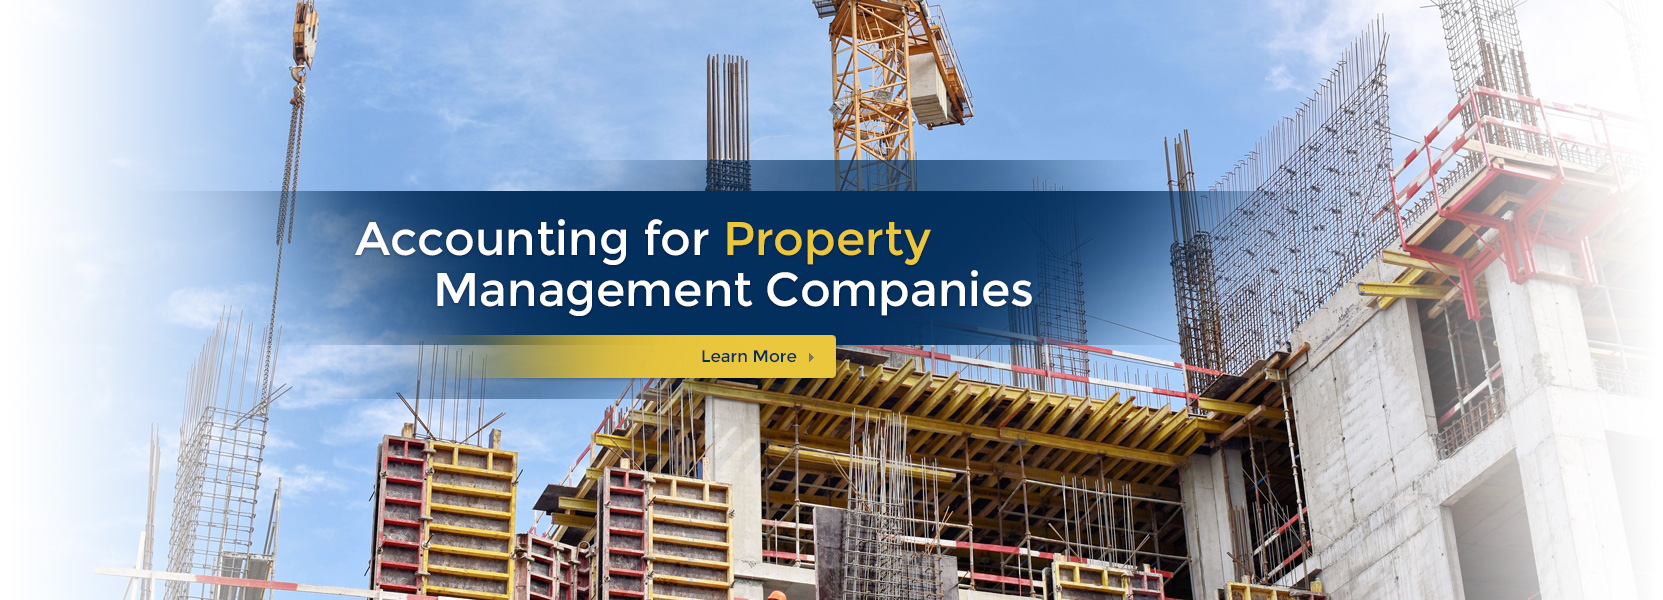 Accounting for Property Management Companies